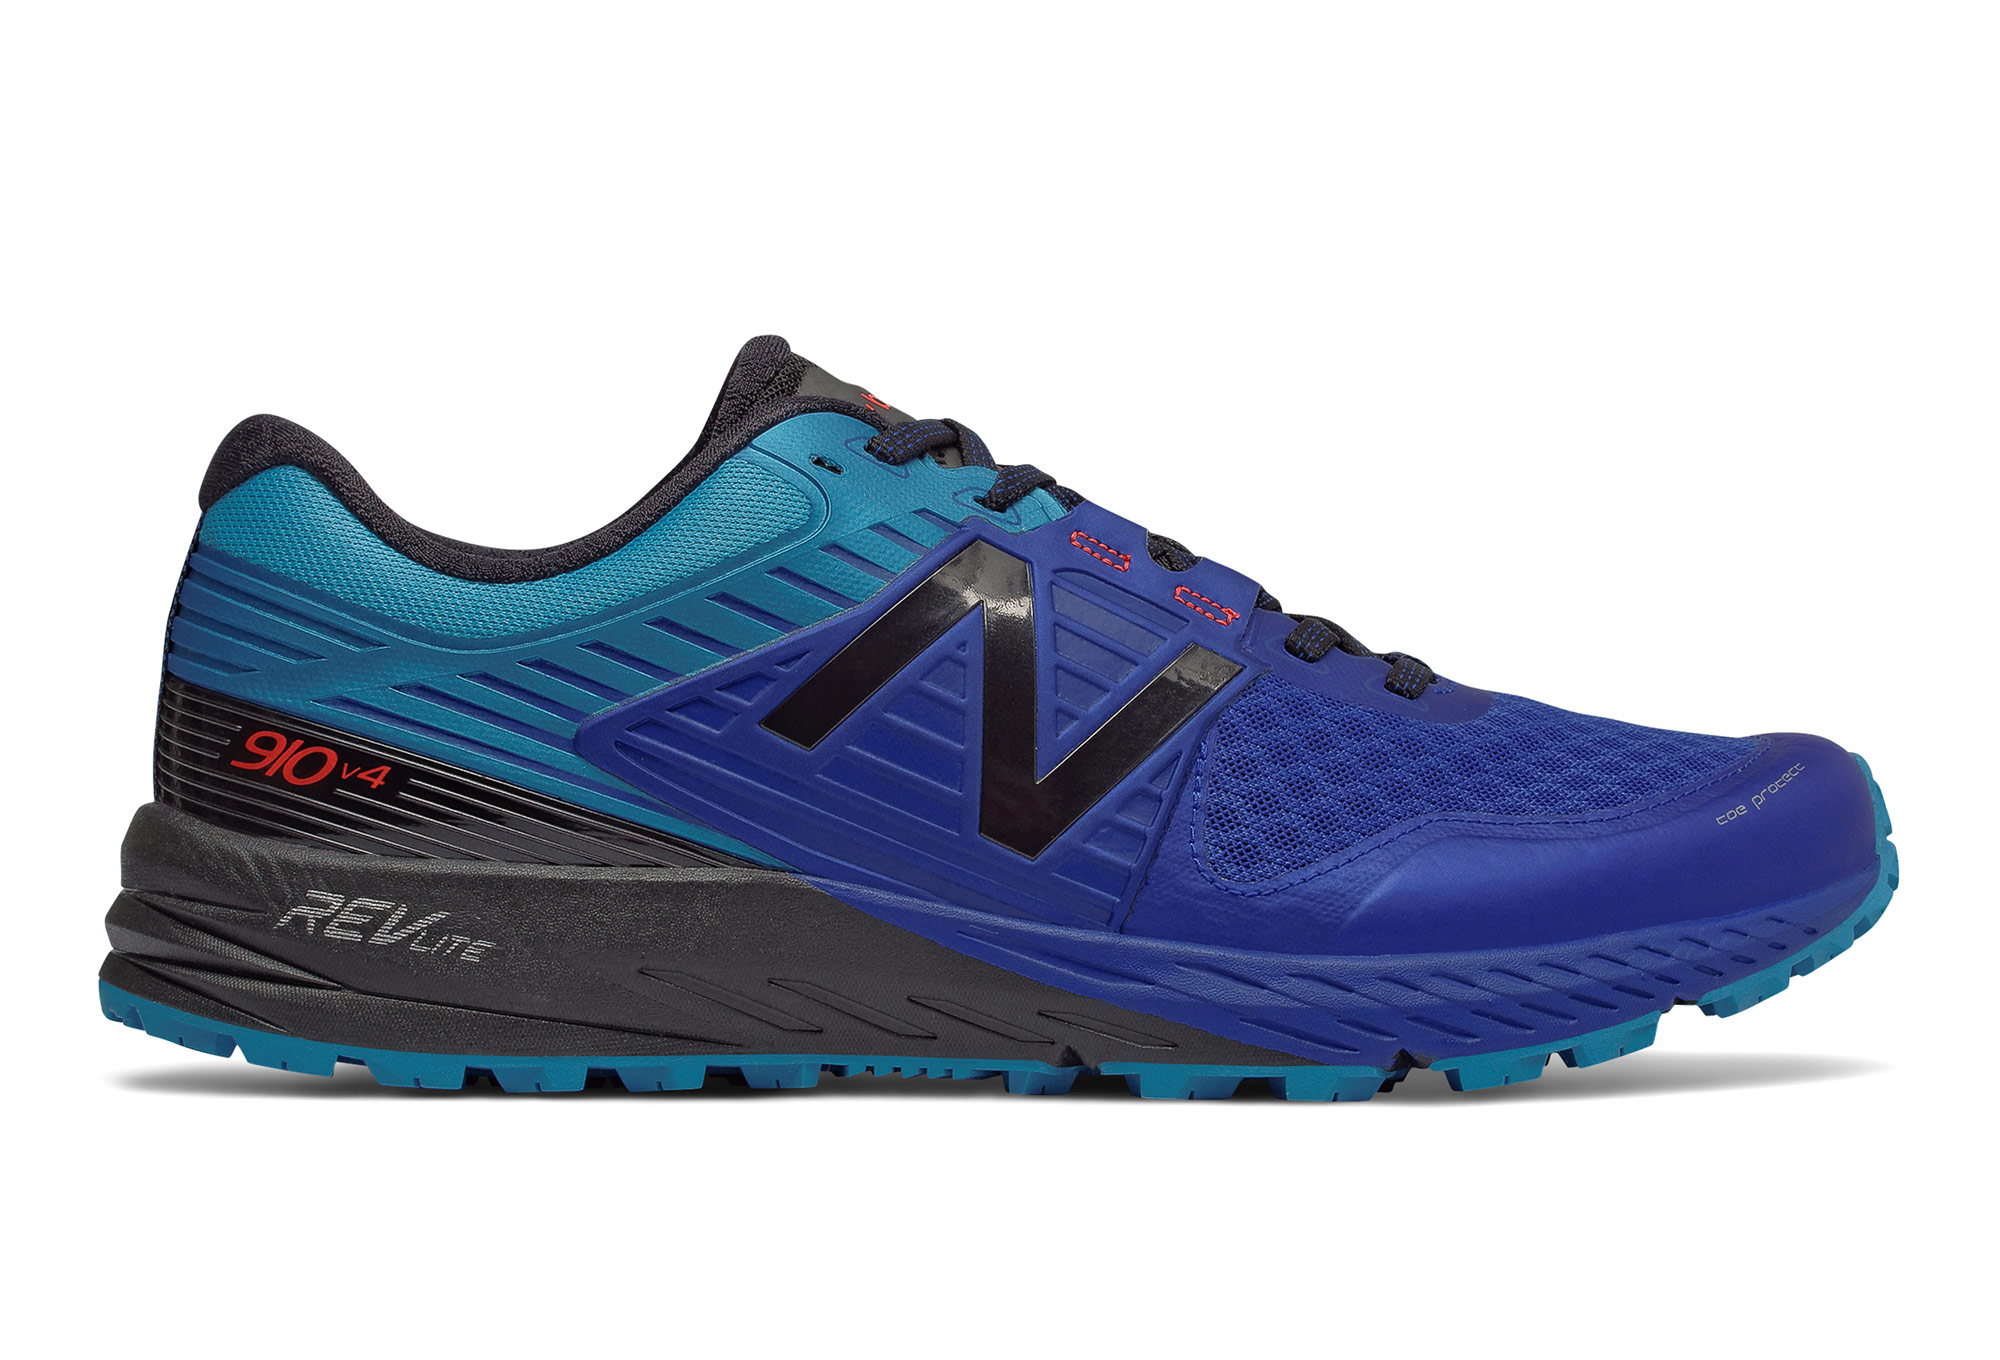 445b93469575 New Balance Trail NBX 910 V4 Blue Men